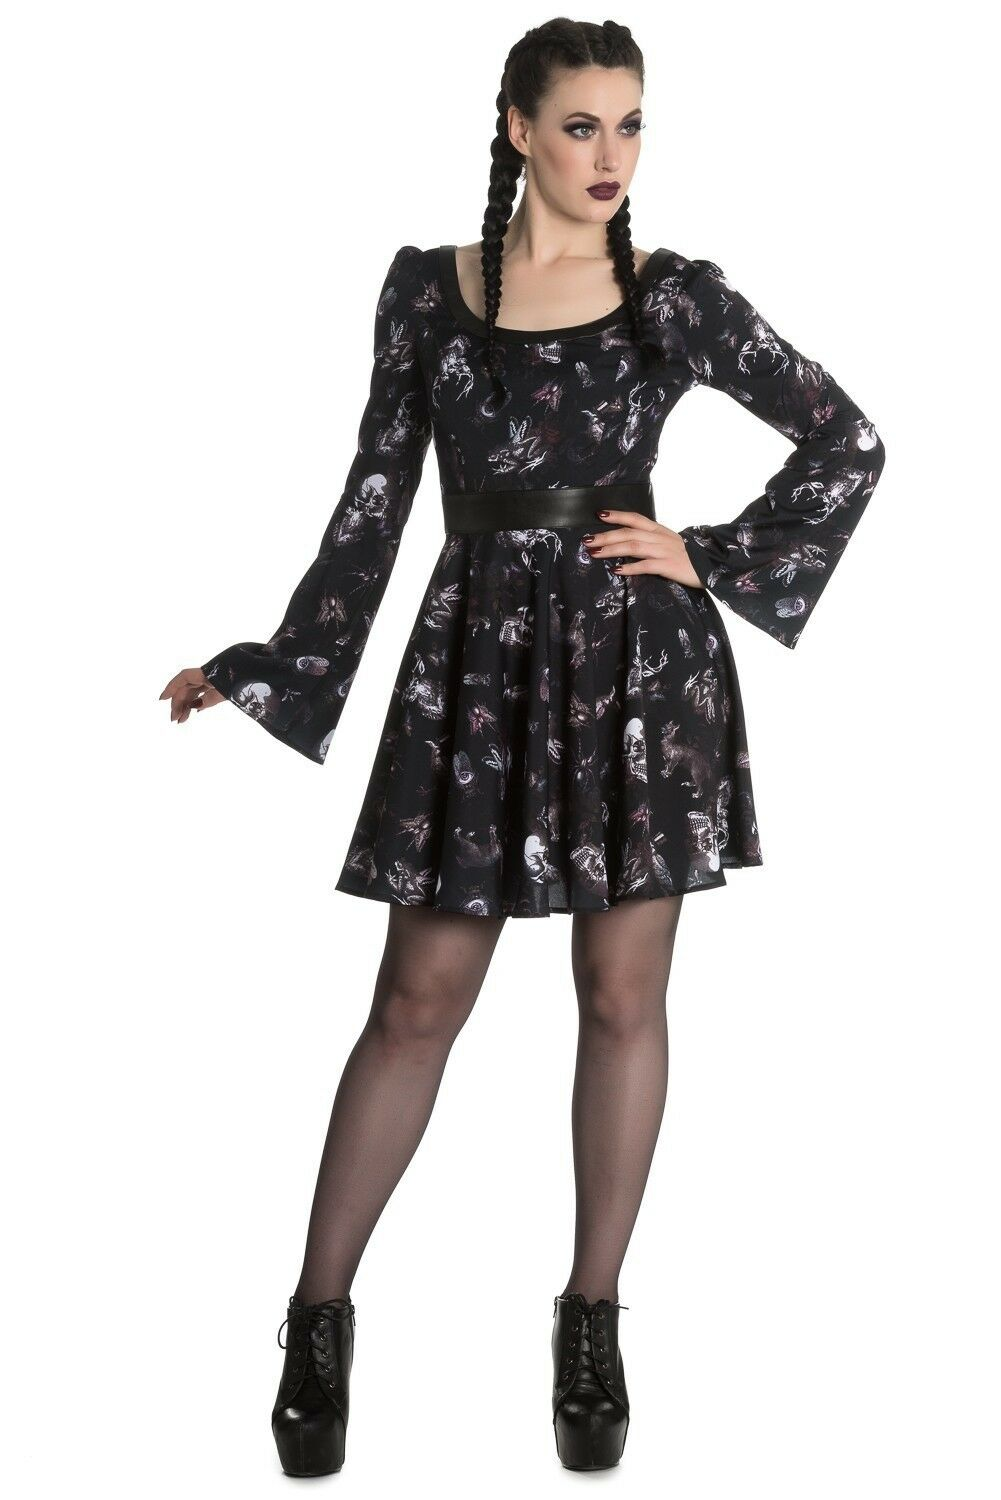 Hell Bunny Taxidermy Dress Skull Stag Bird Cat Spider 8-22 Plus Size Goth Occult